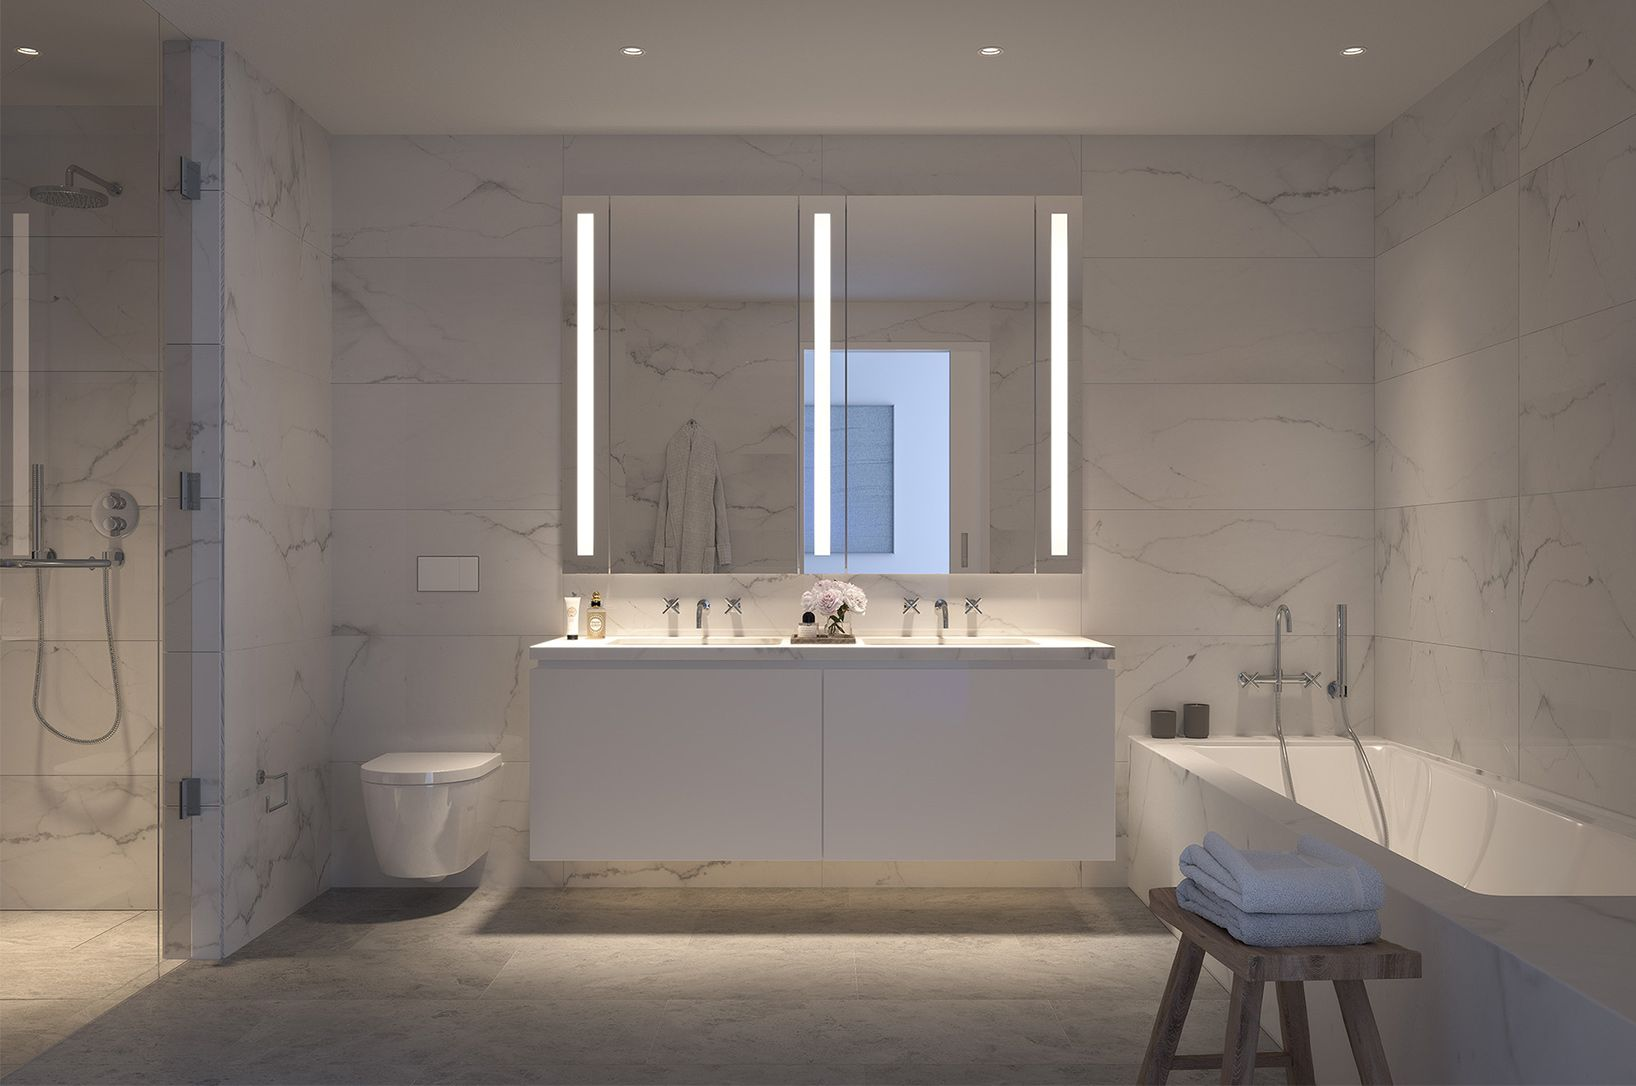 At 685 First Avenue The Master Baths Feature Blue De Savoie Stone Floors And Calacatta Lincoln Marble Walls Nyc Condo New York Apartments Manhattan Residence